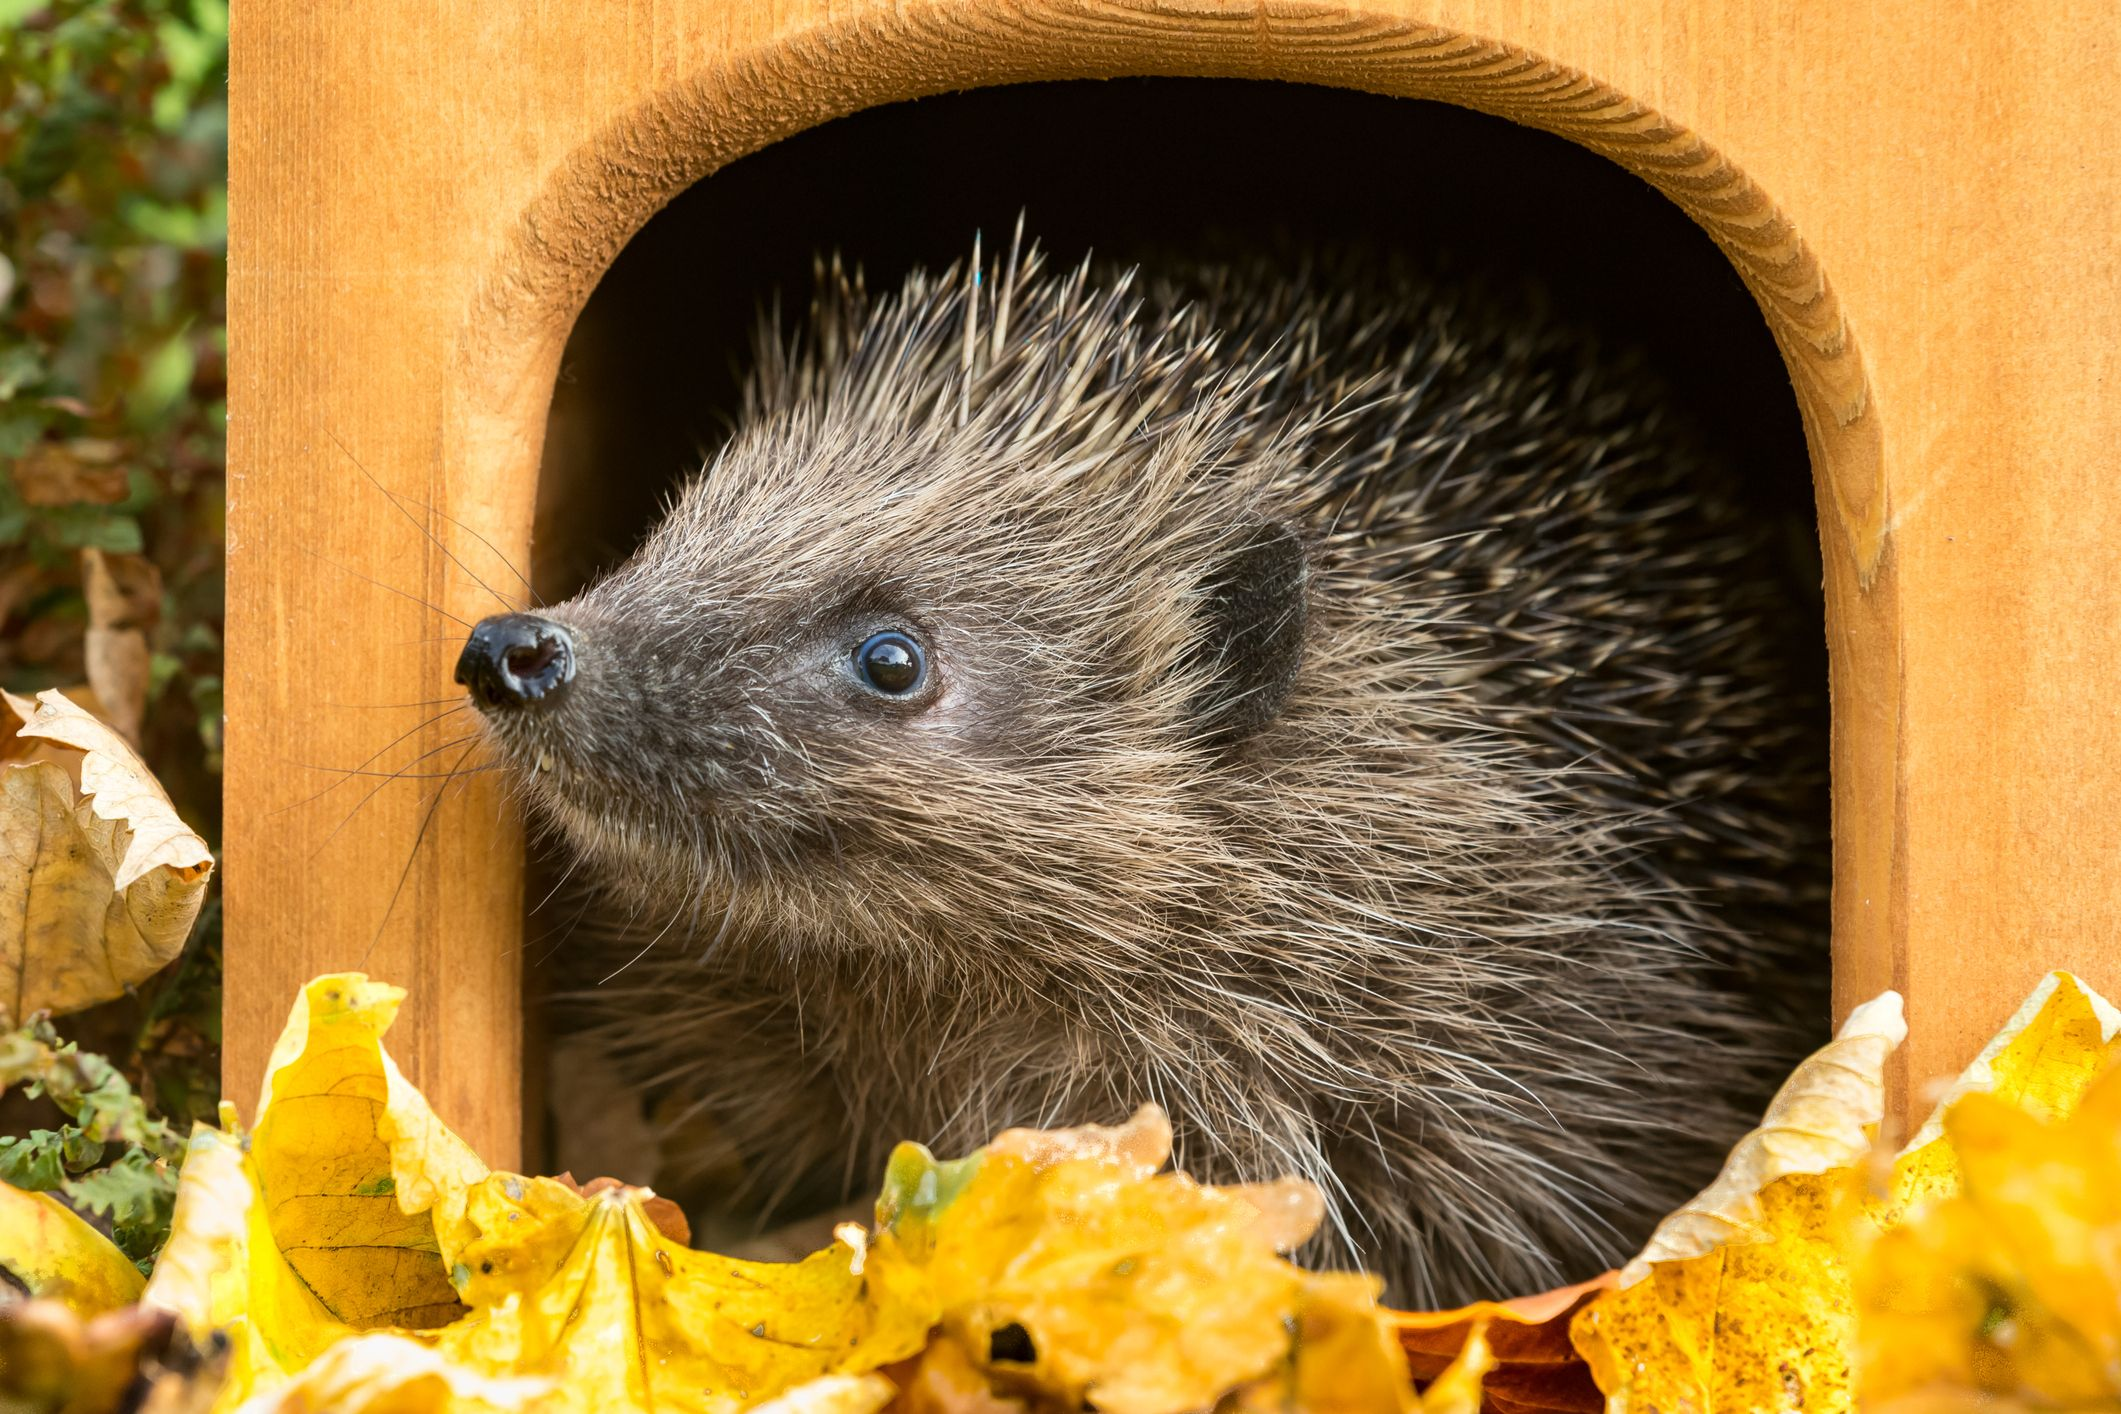 How to make a hedgehog house